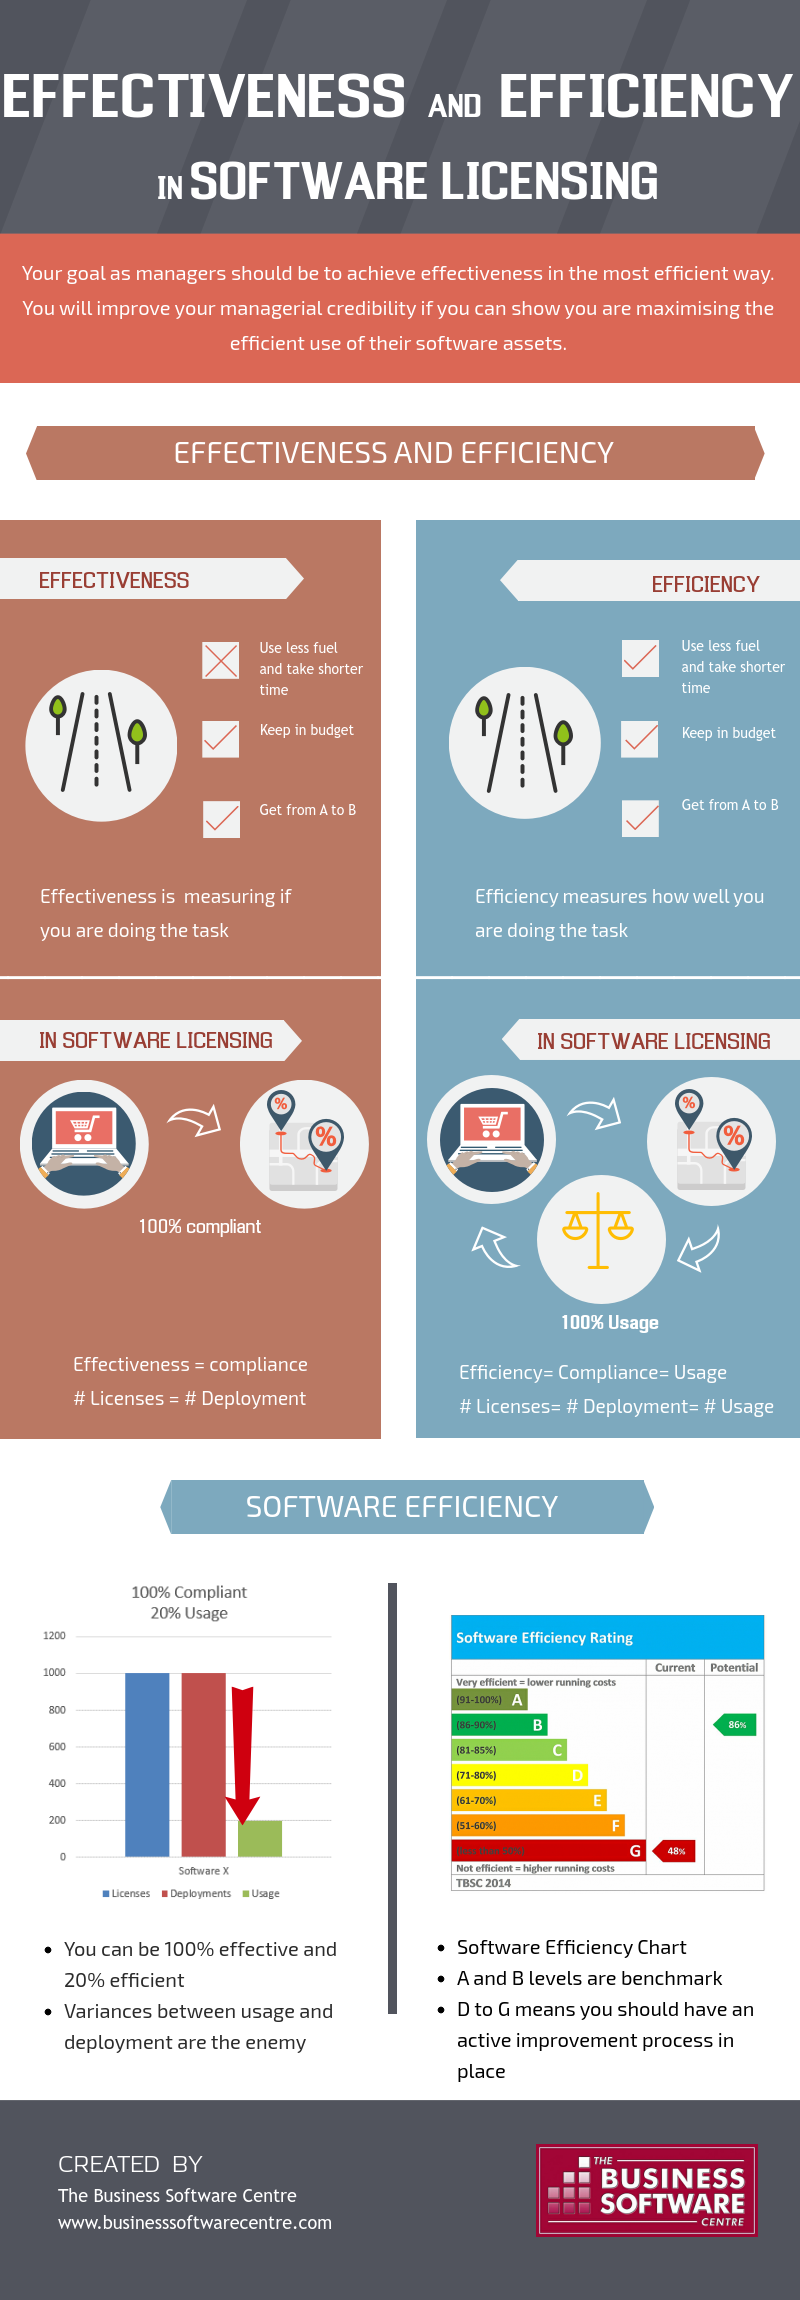 Effectiveness and Efficiency in software licensing